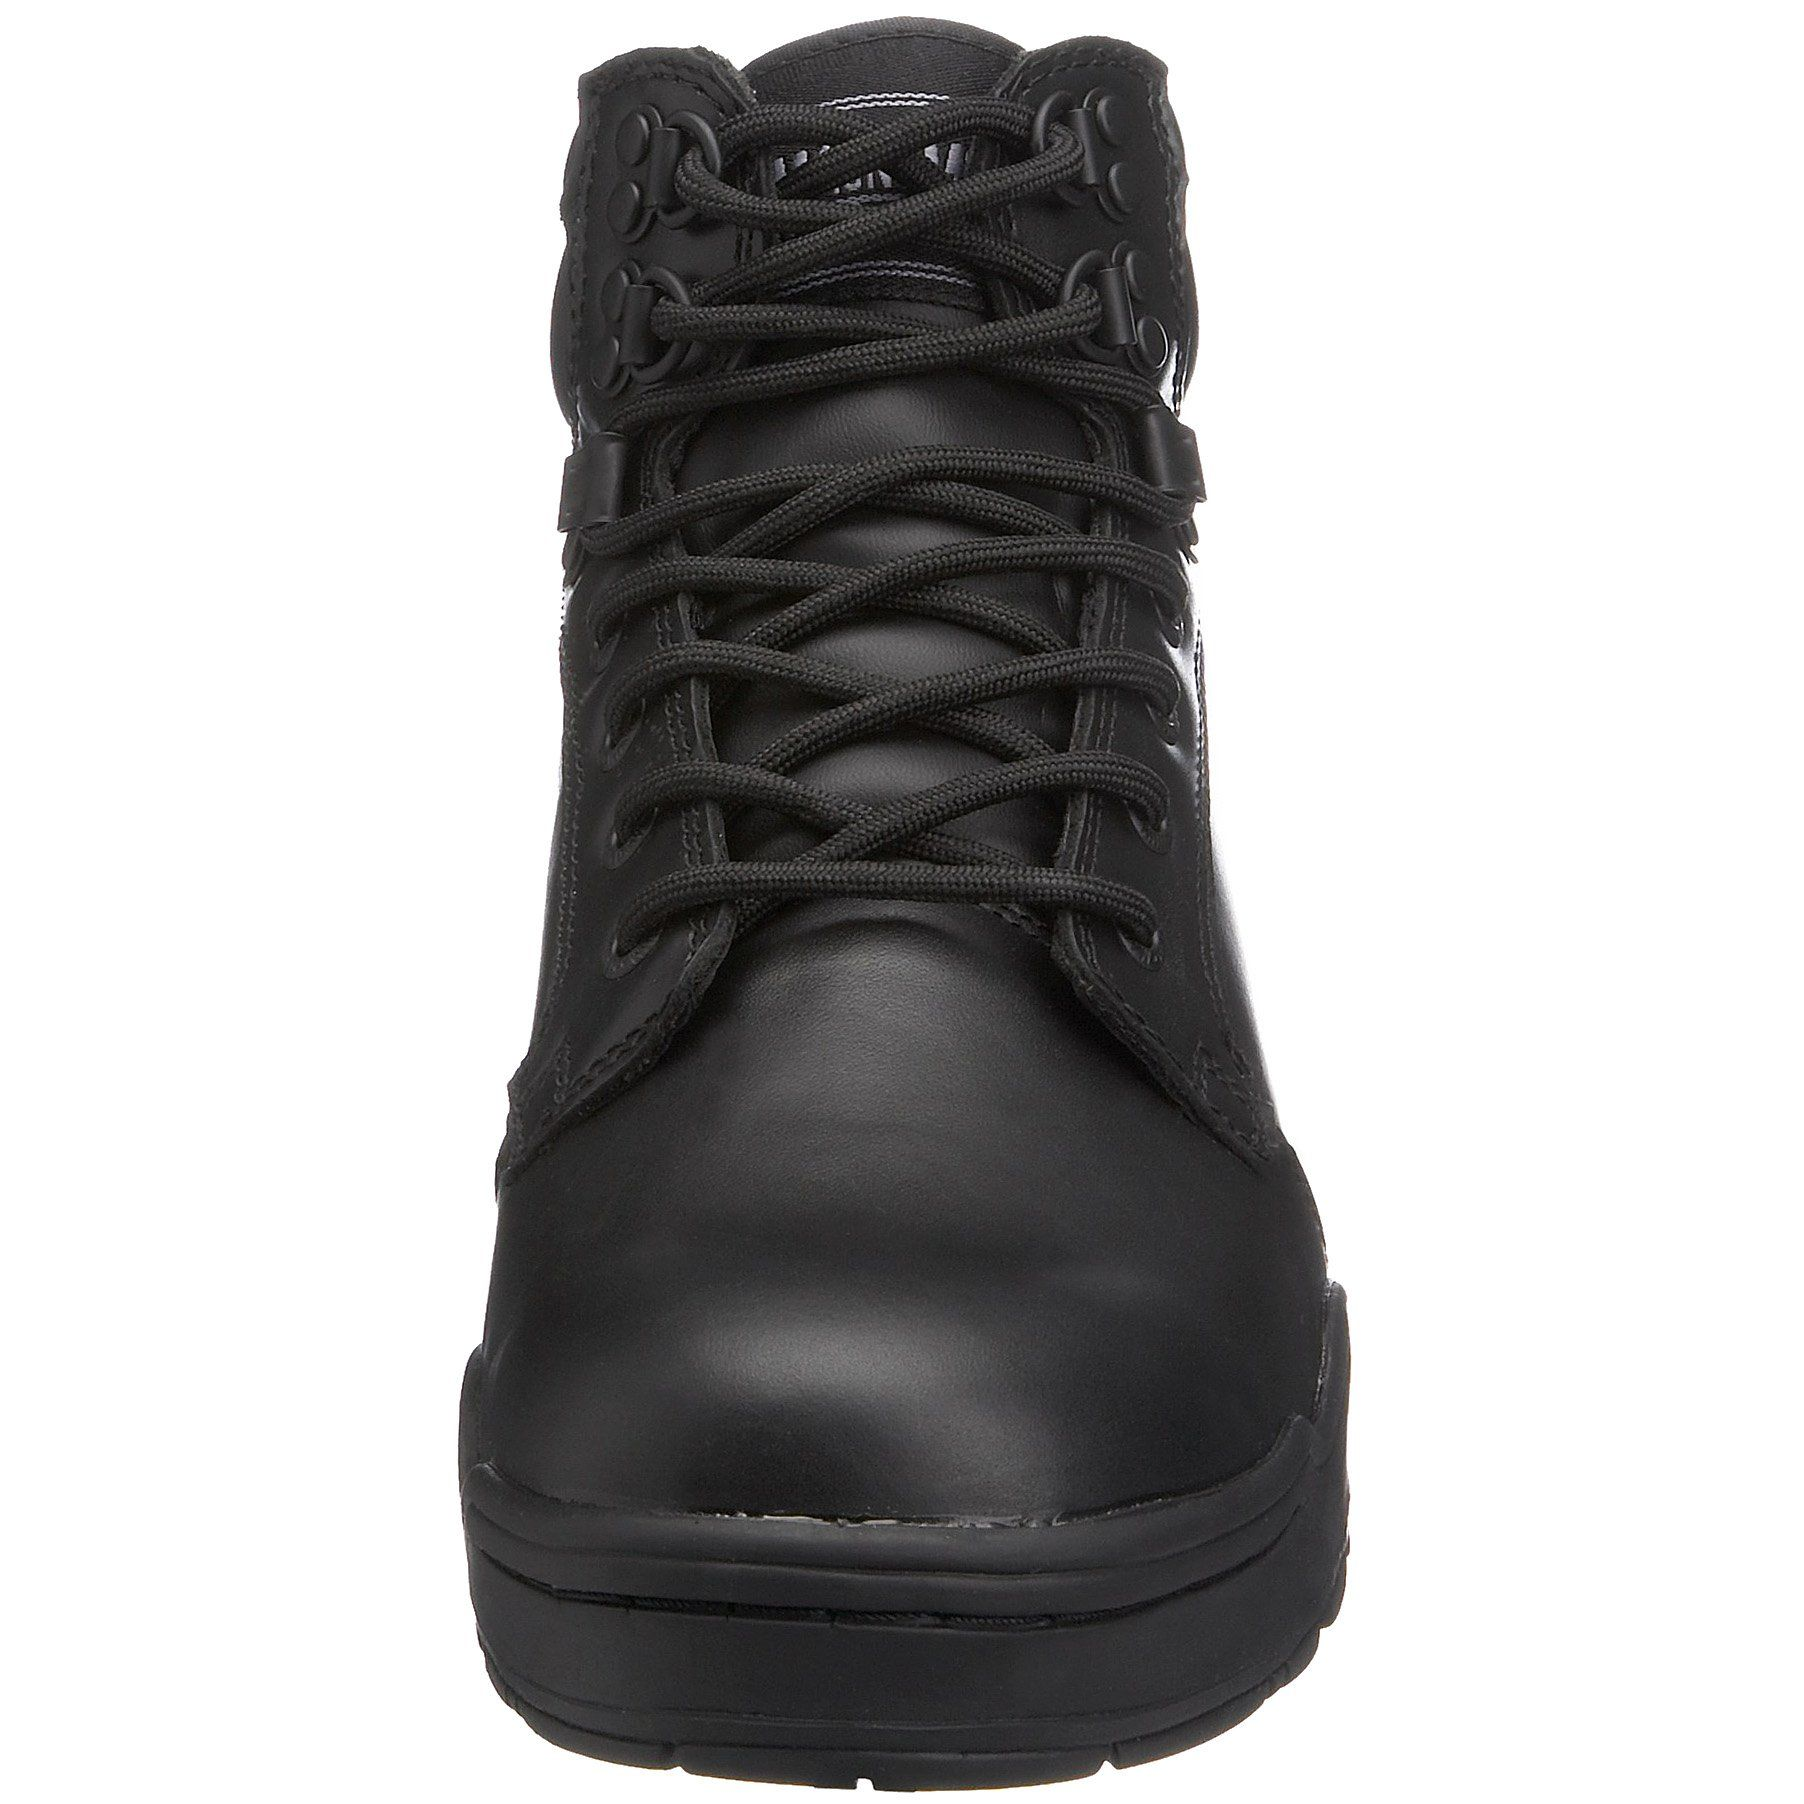 76957522b9 Magnum Unisex Patrol CEN Tactical Footwear Military Police Security Leather  Boots: Amazon.co.uk: Shoes & Bags